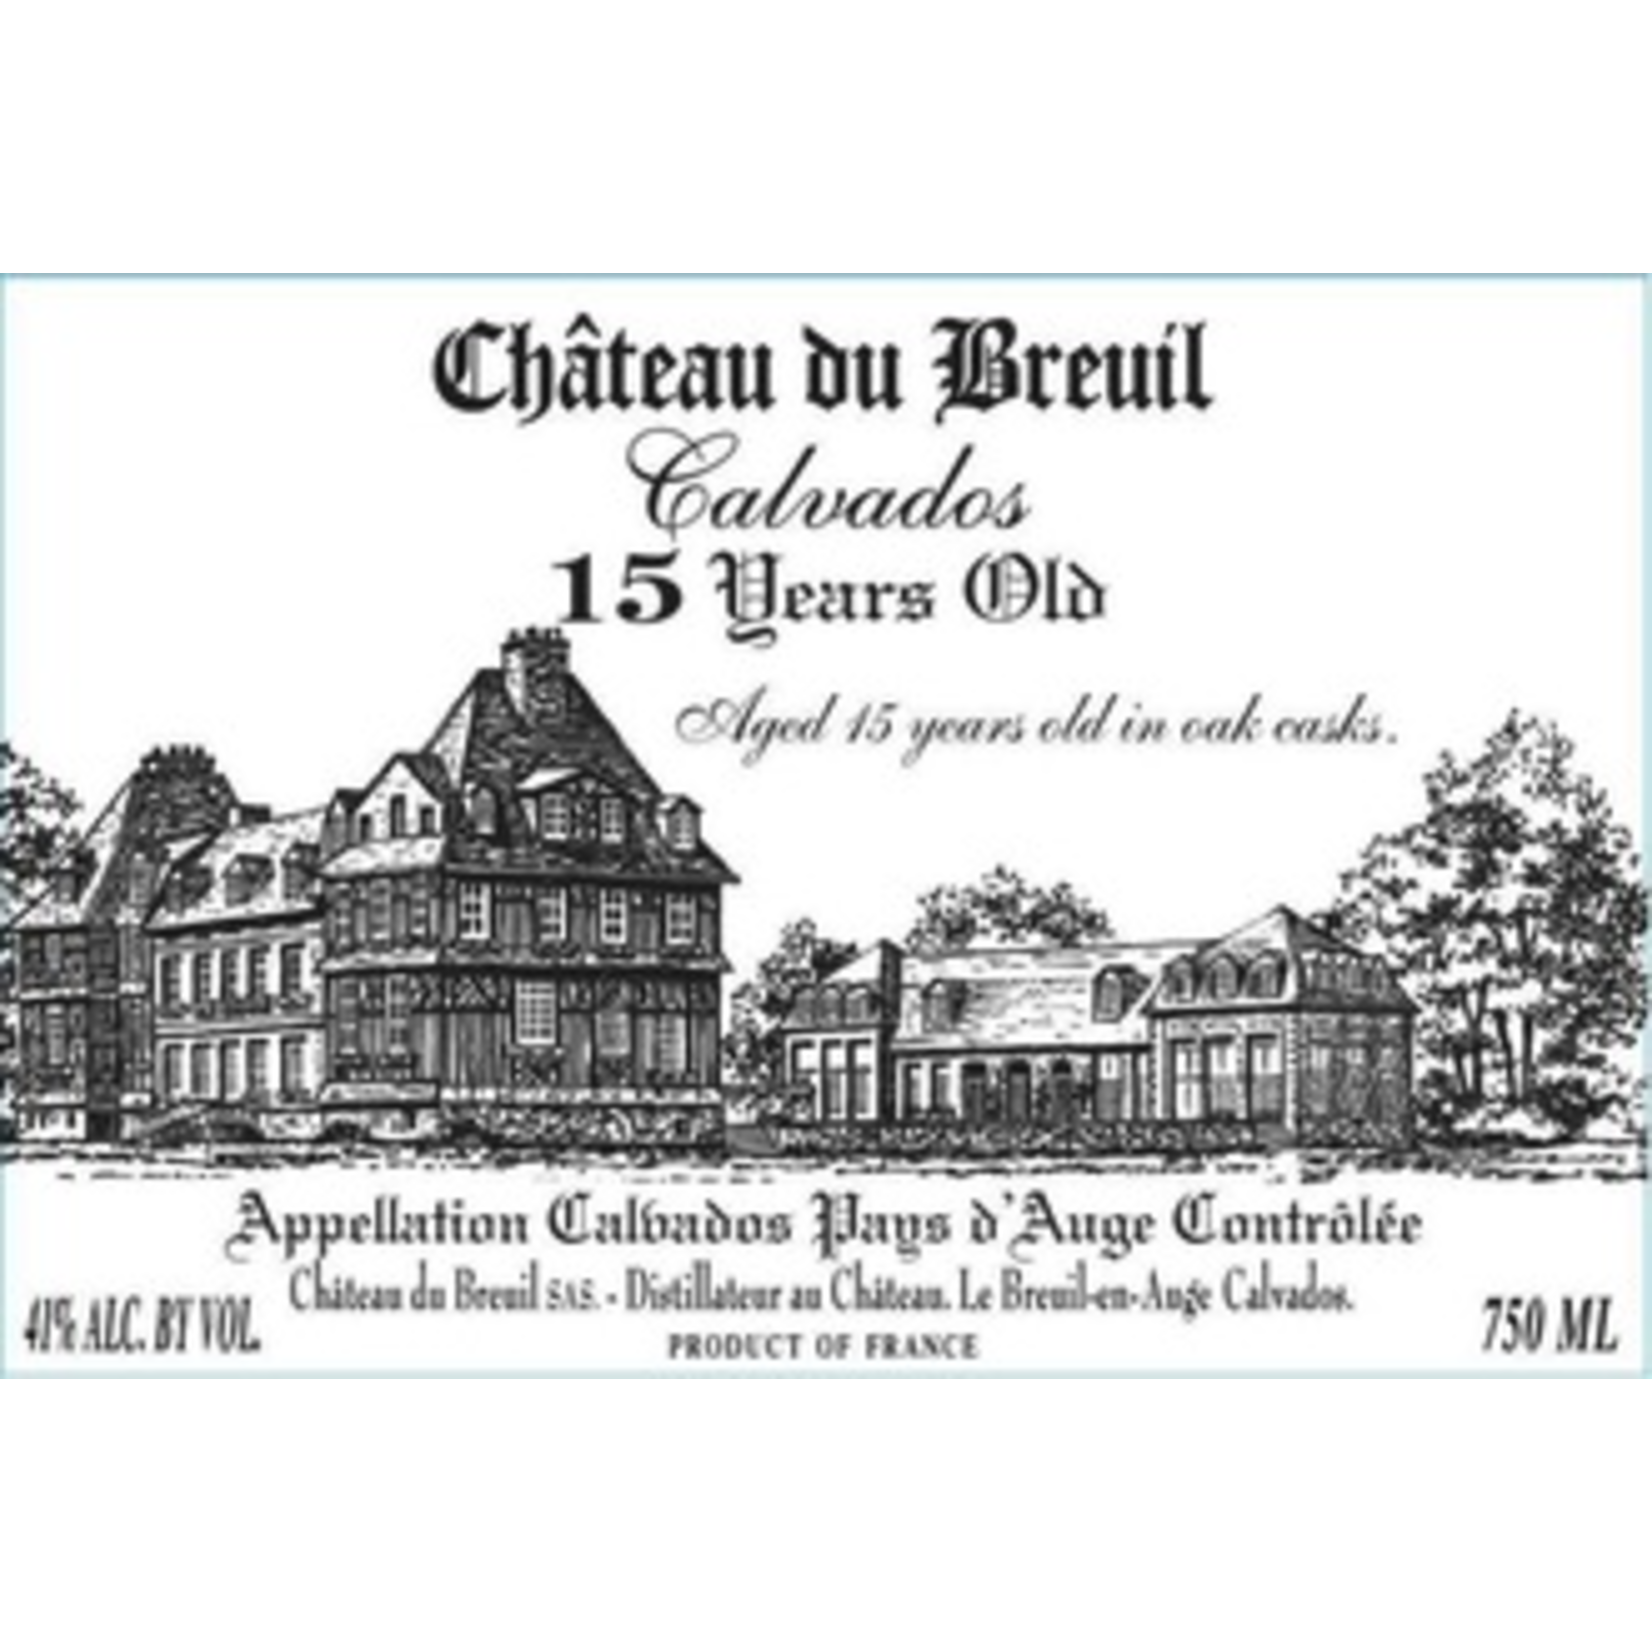 Spirits Chateau du Breuil Calvados 15 Years Old Pays d'Auge